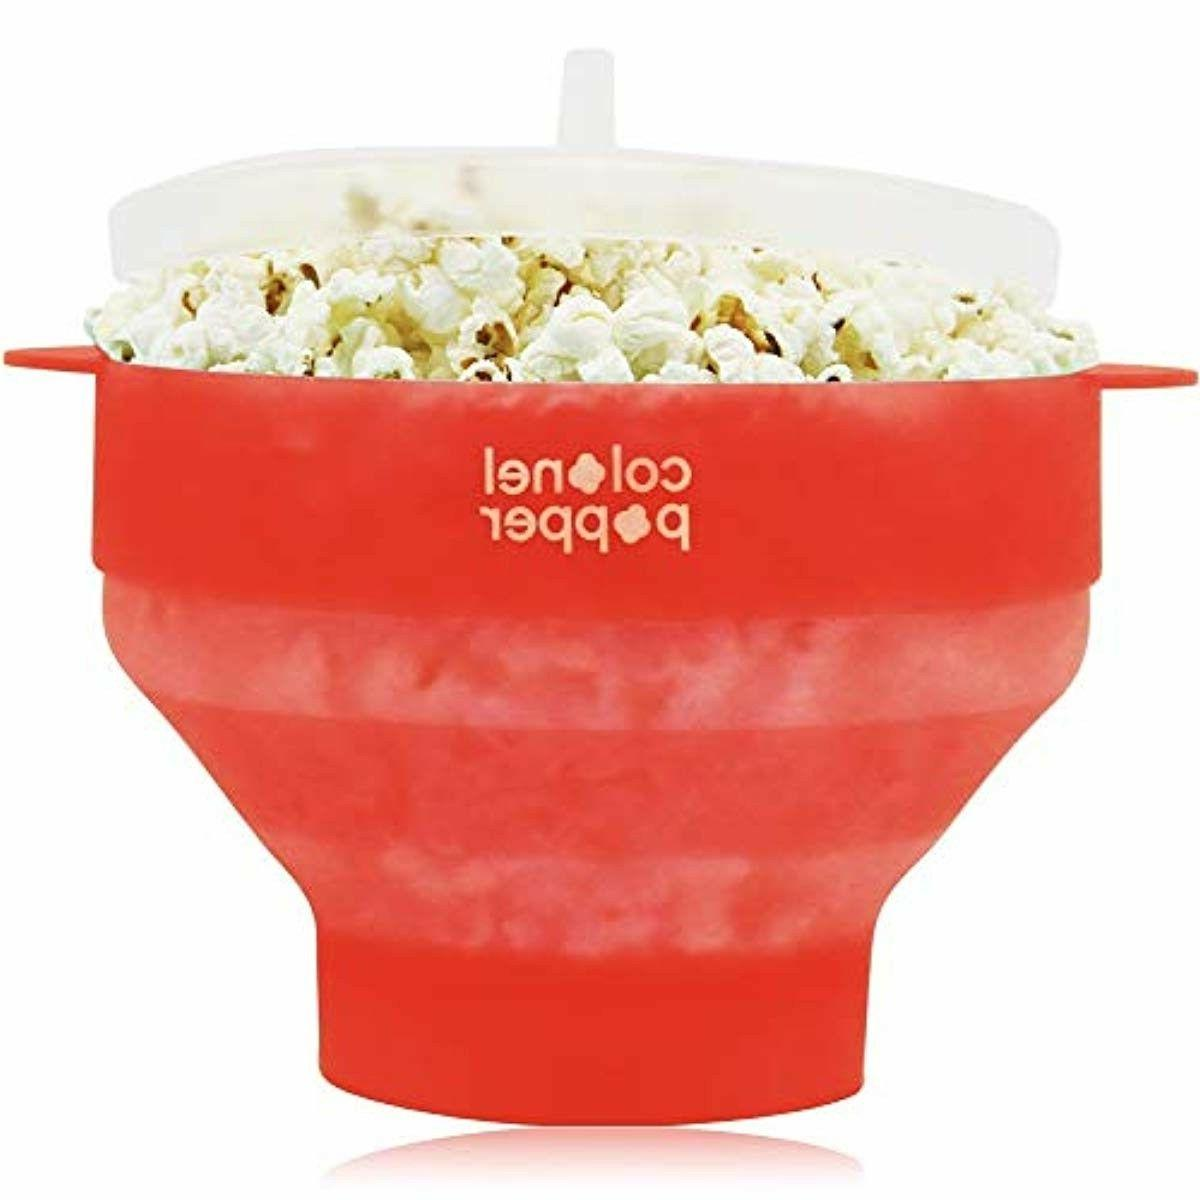 Popcorn Silicone Microwave Maker Popper Collapsible Healthy Pop Popper